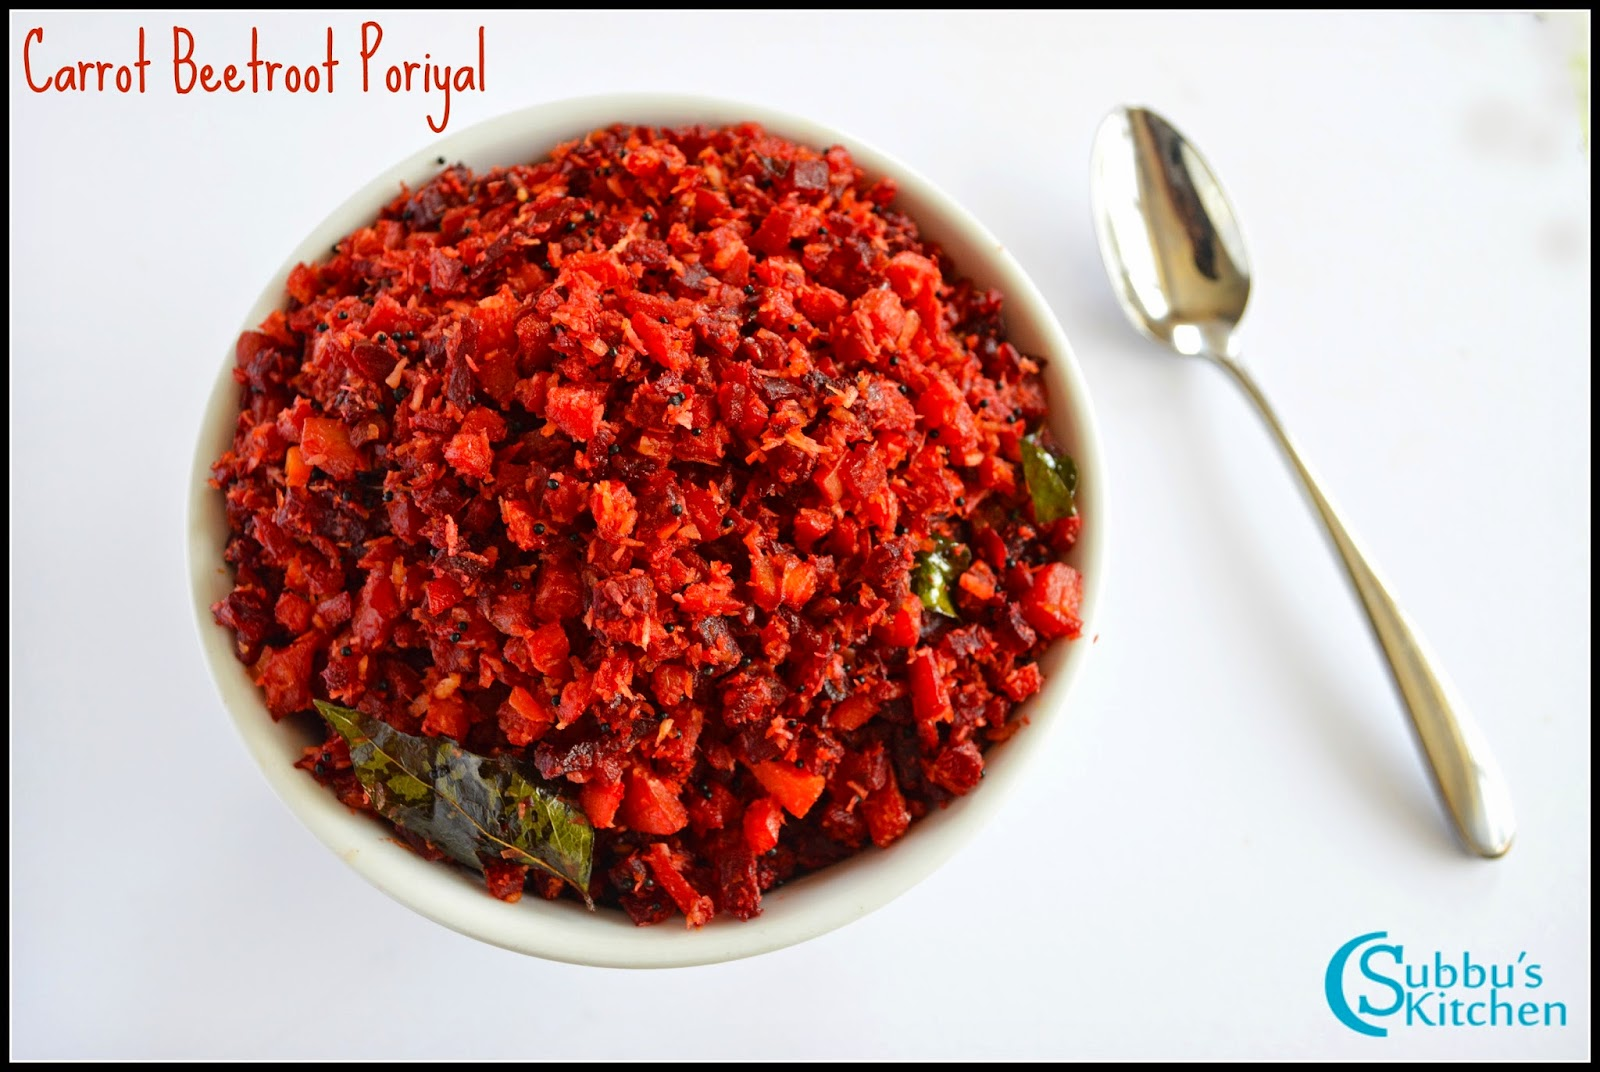 Carrot Beetroot Poriyal